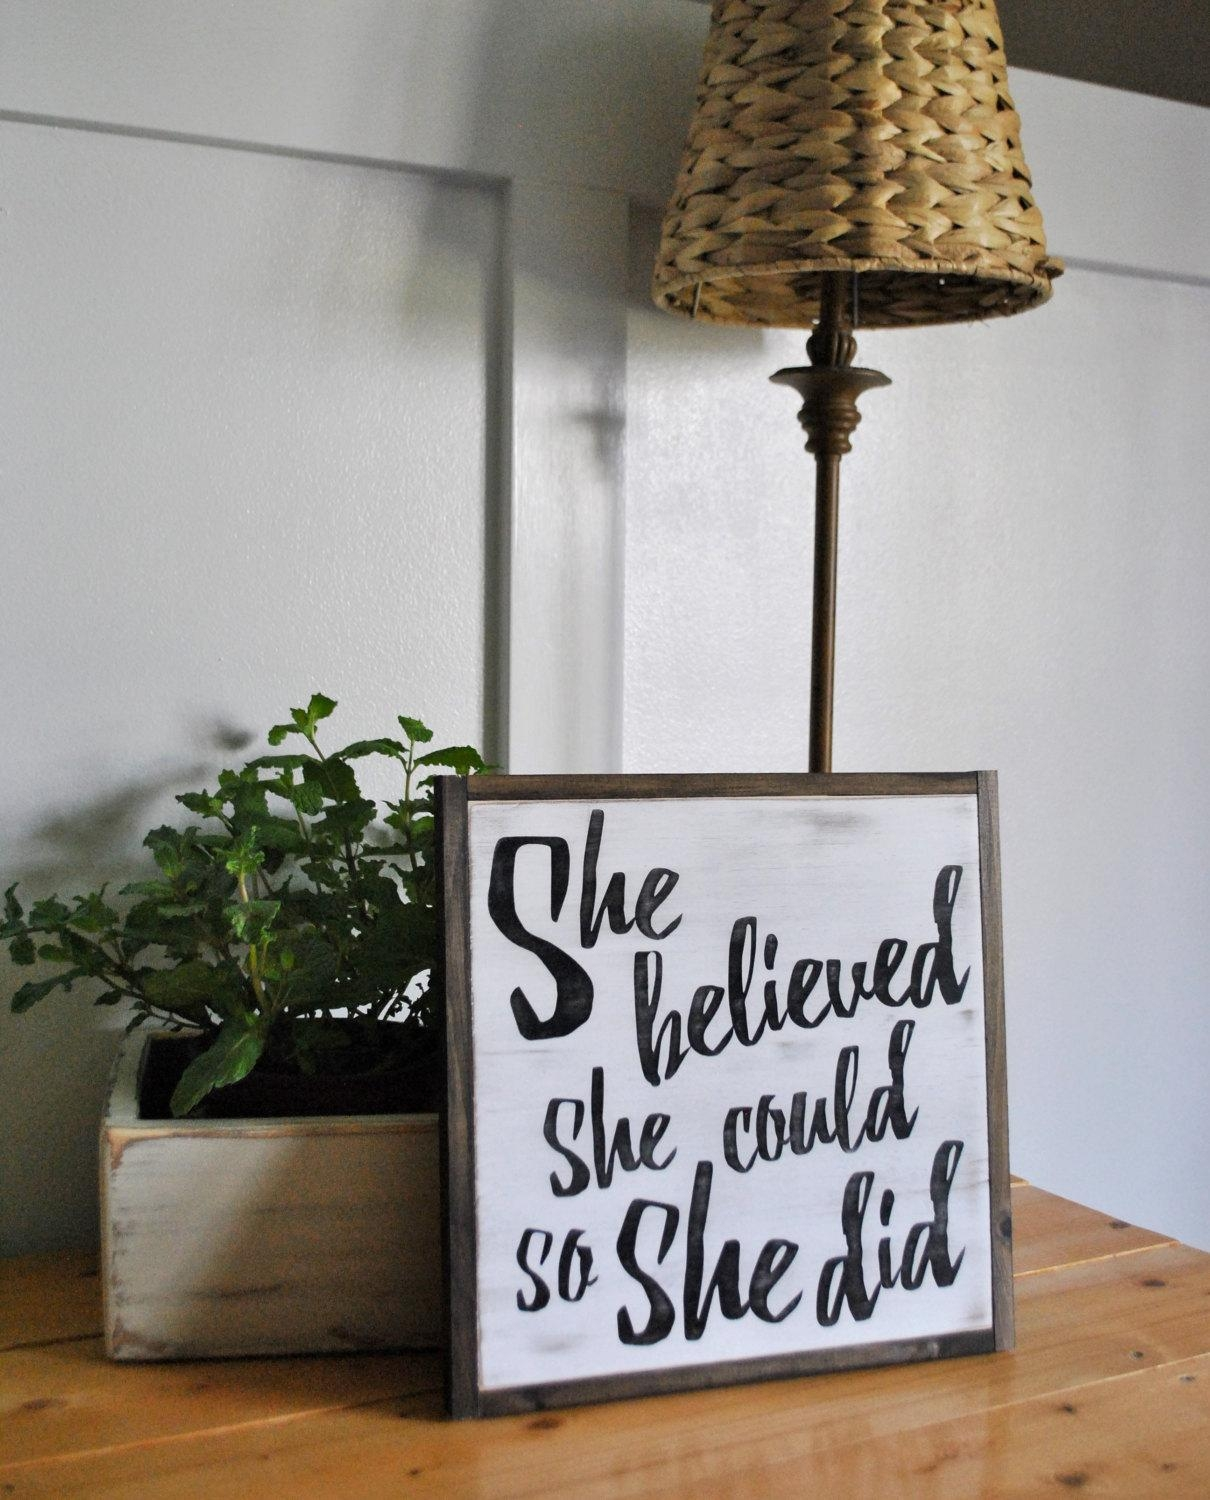 She Believed She Could So She Did 1'x1' Sign | Distressed Shabby Pertaining To She Believed She Could So She Did Wall Art (View 20 of 20)